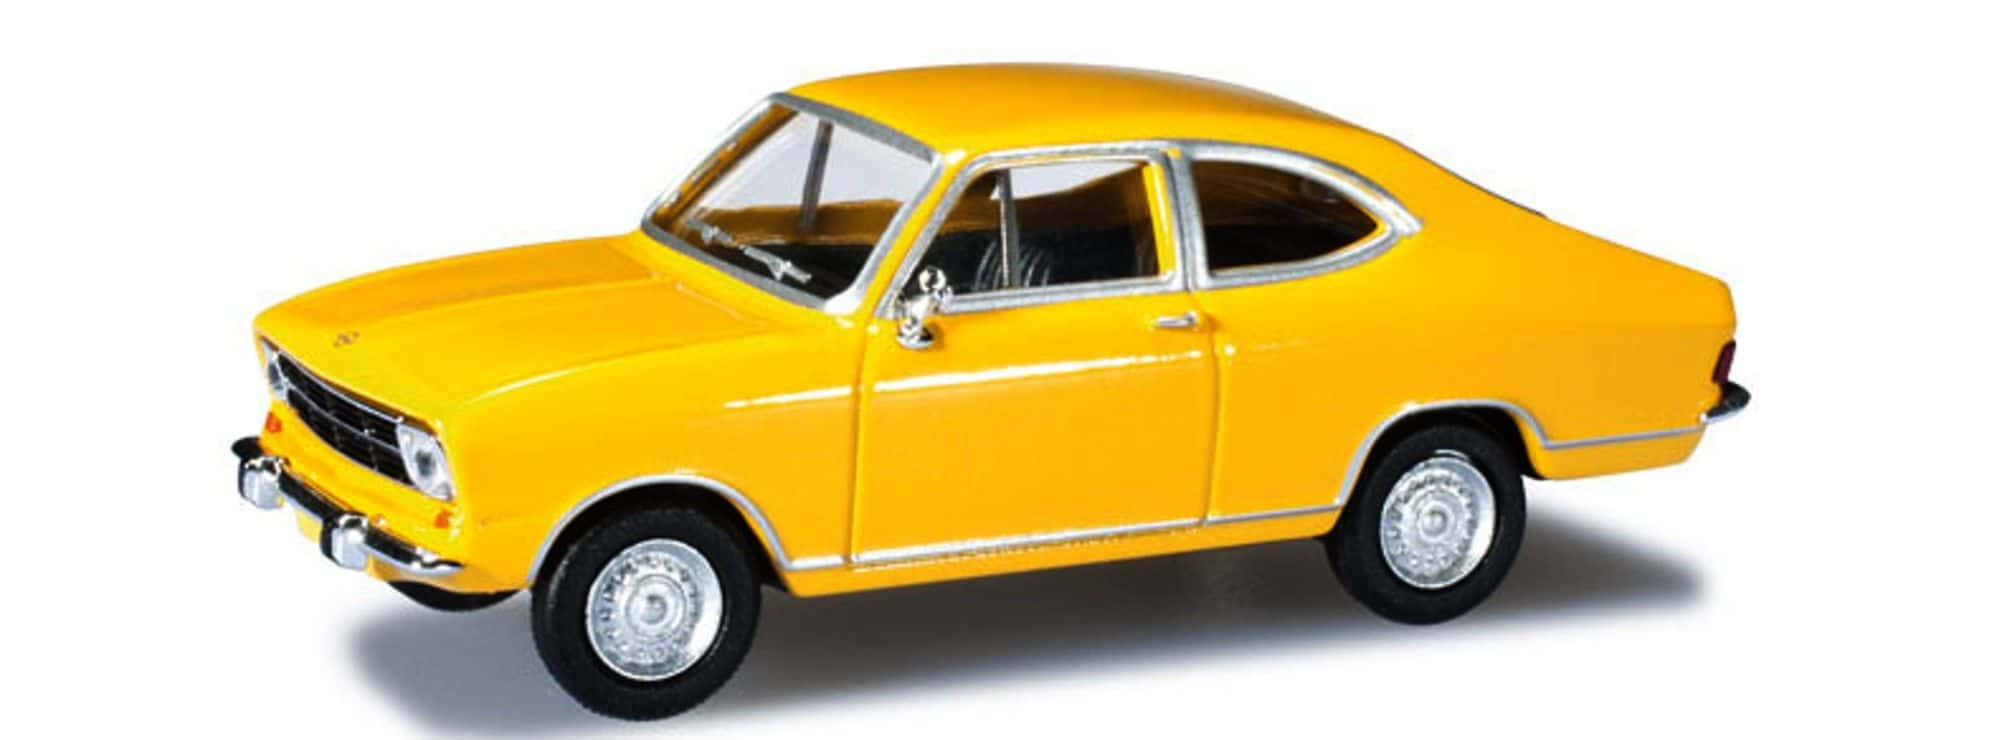 herpa 024723 opel kadett b coupe modellauto 1 87 online. Black Bedroom Furniture Sets. Home Design Ideas